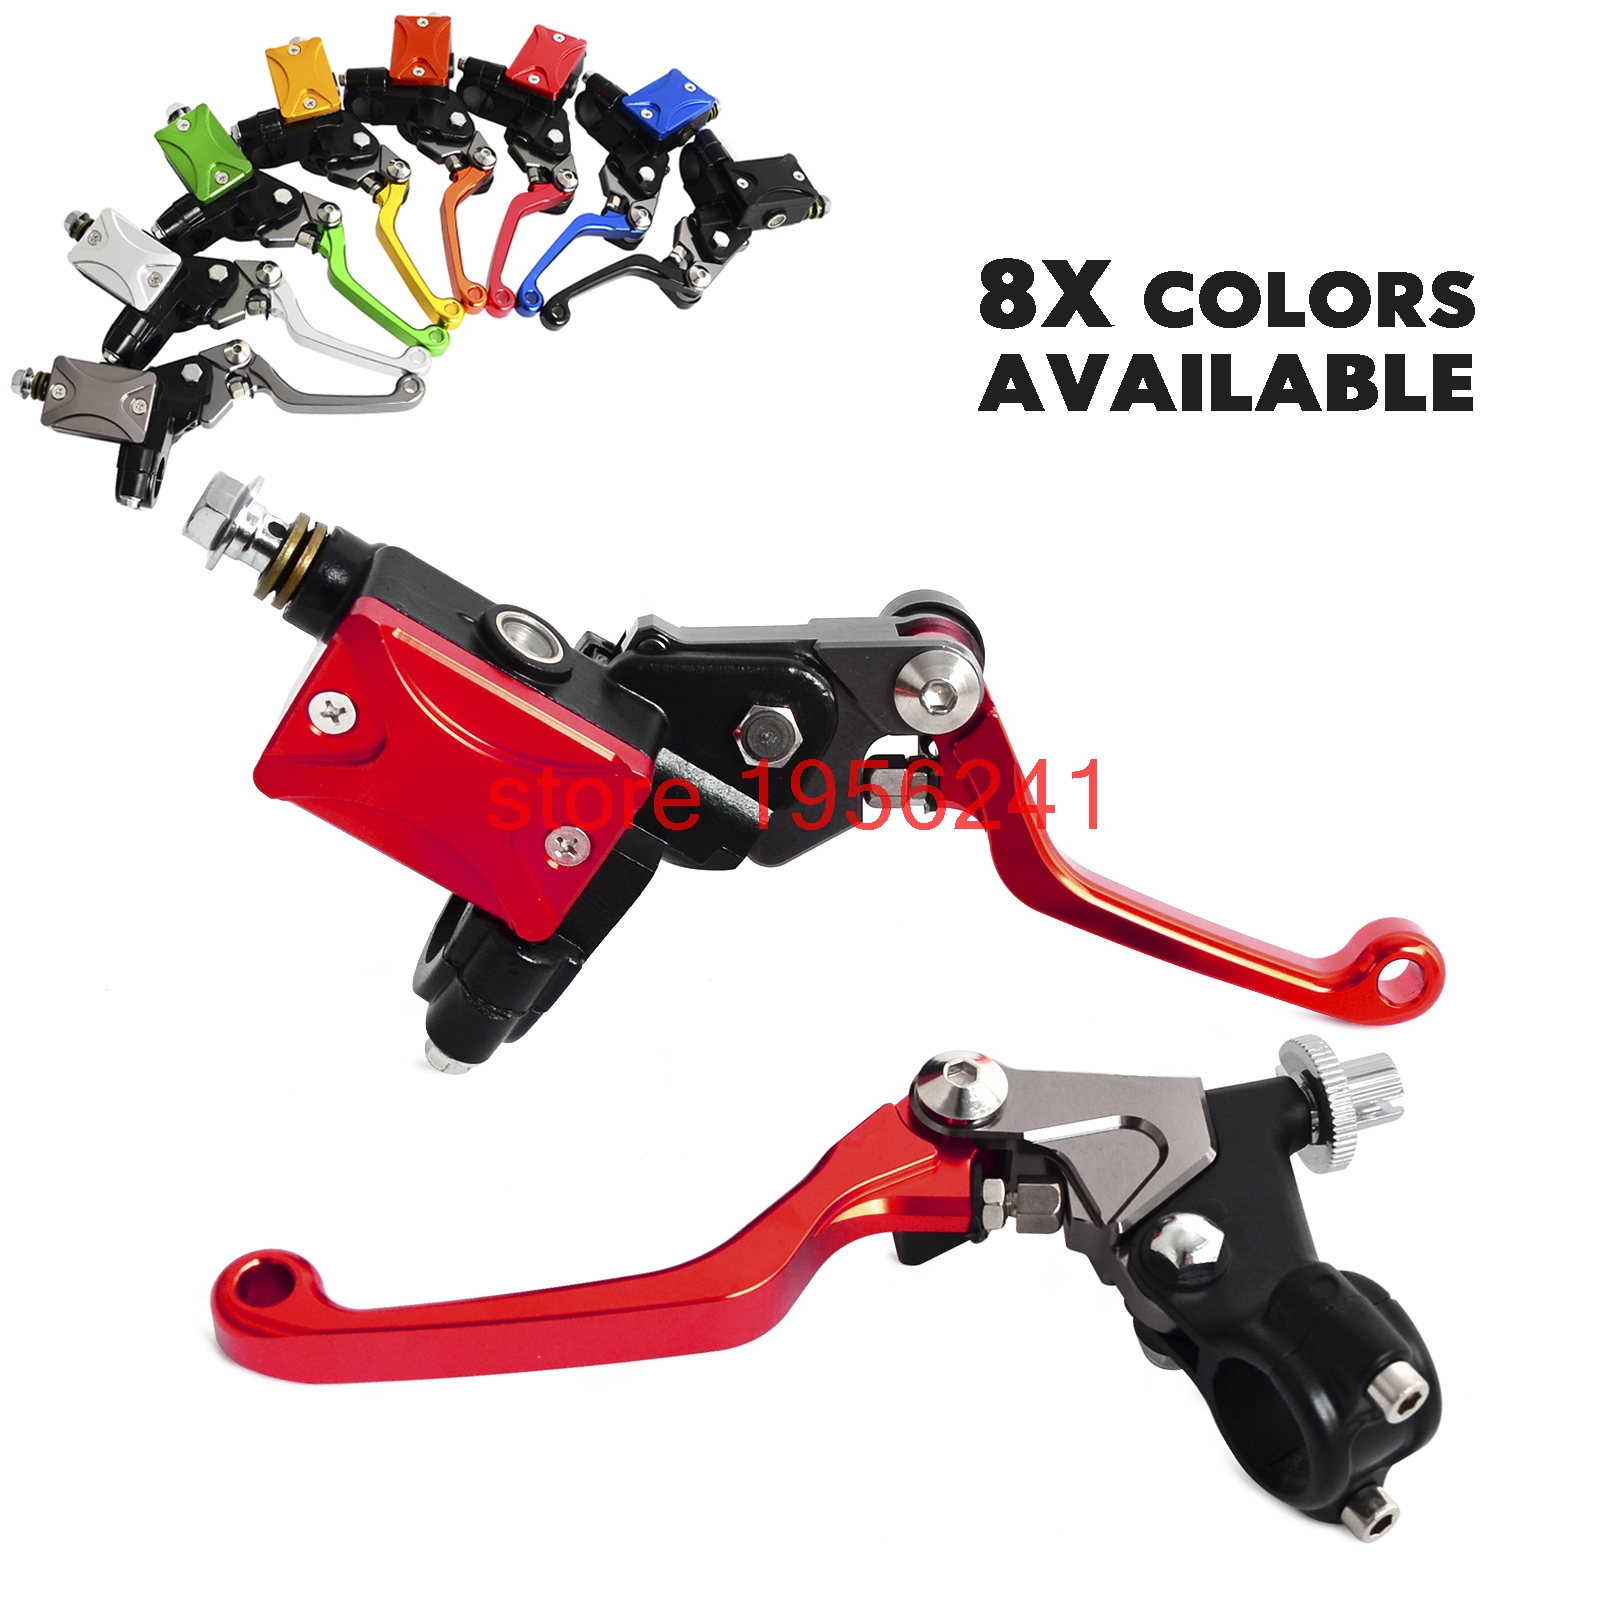 H2CNC Hydraulic Brake & Cable Clutch Lever Set Assembly For Kawasaki KX65 KX85 KX125 KX250 KX250F KX450F KLX250 KLX450R cnc pivot brake clutch lever for kawasaki kx65 kx85 kx125 kx250 kx250f new